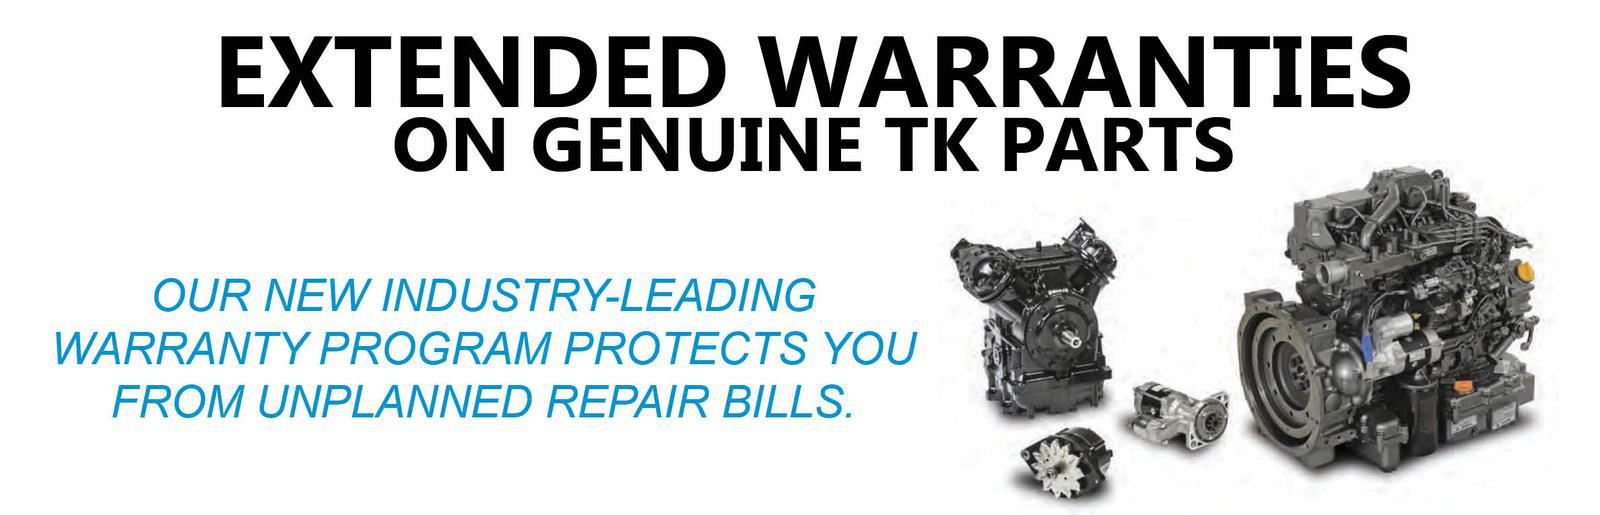 Extended Warranties on Genuine TK Parts. New Industry-Leading Warranty Program Protects You From Unplanned Repair Bills.